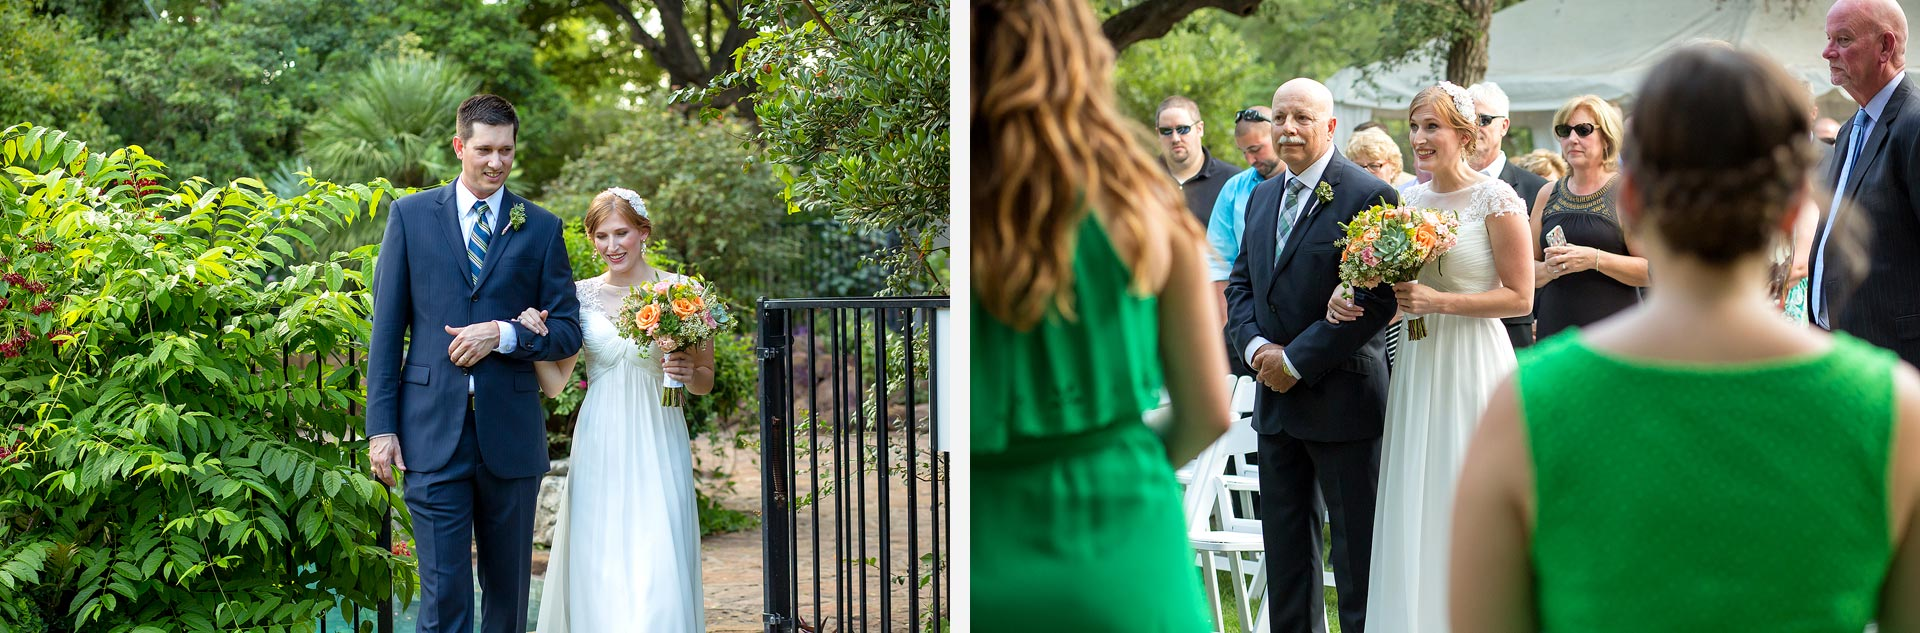 Hummingbird House Wedding Ceremony